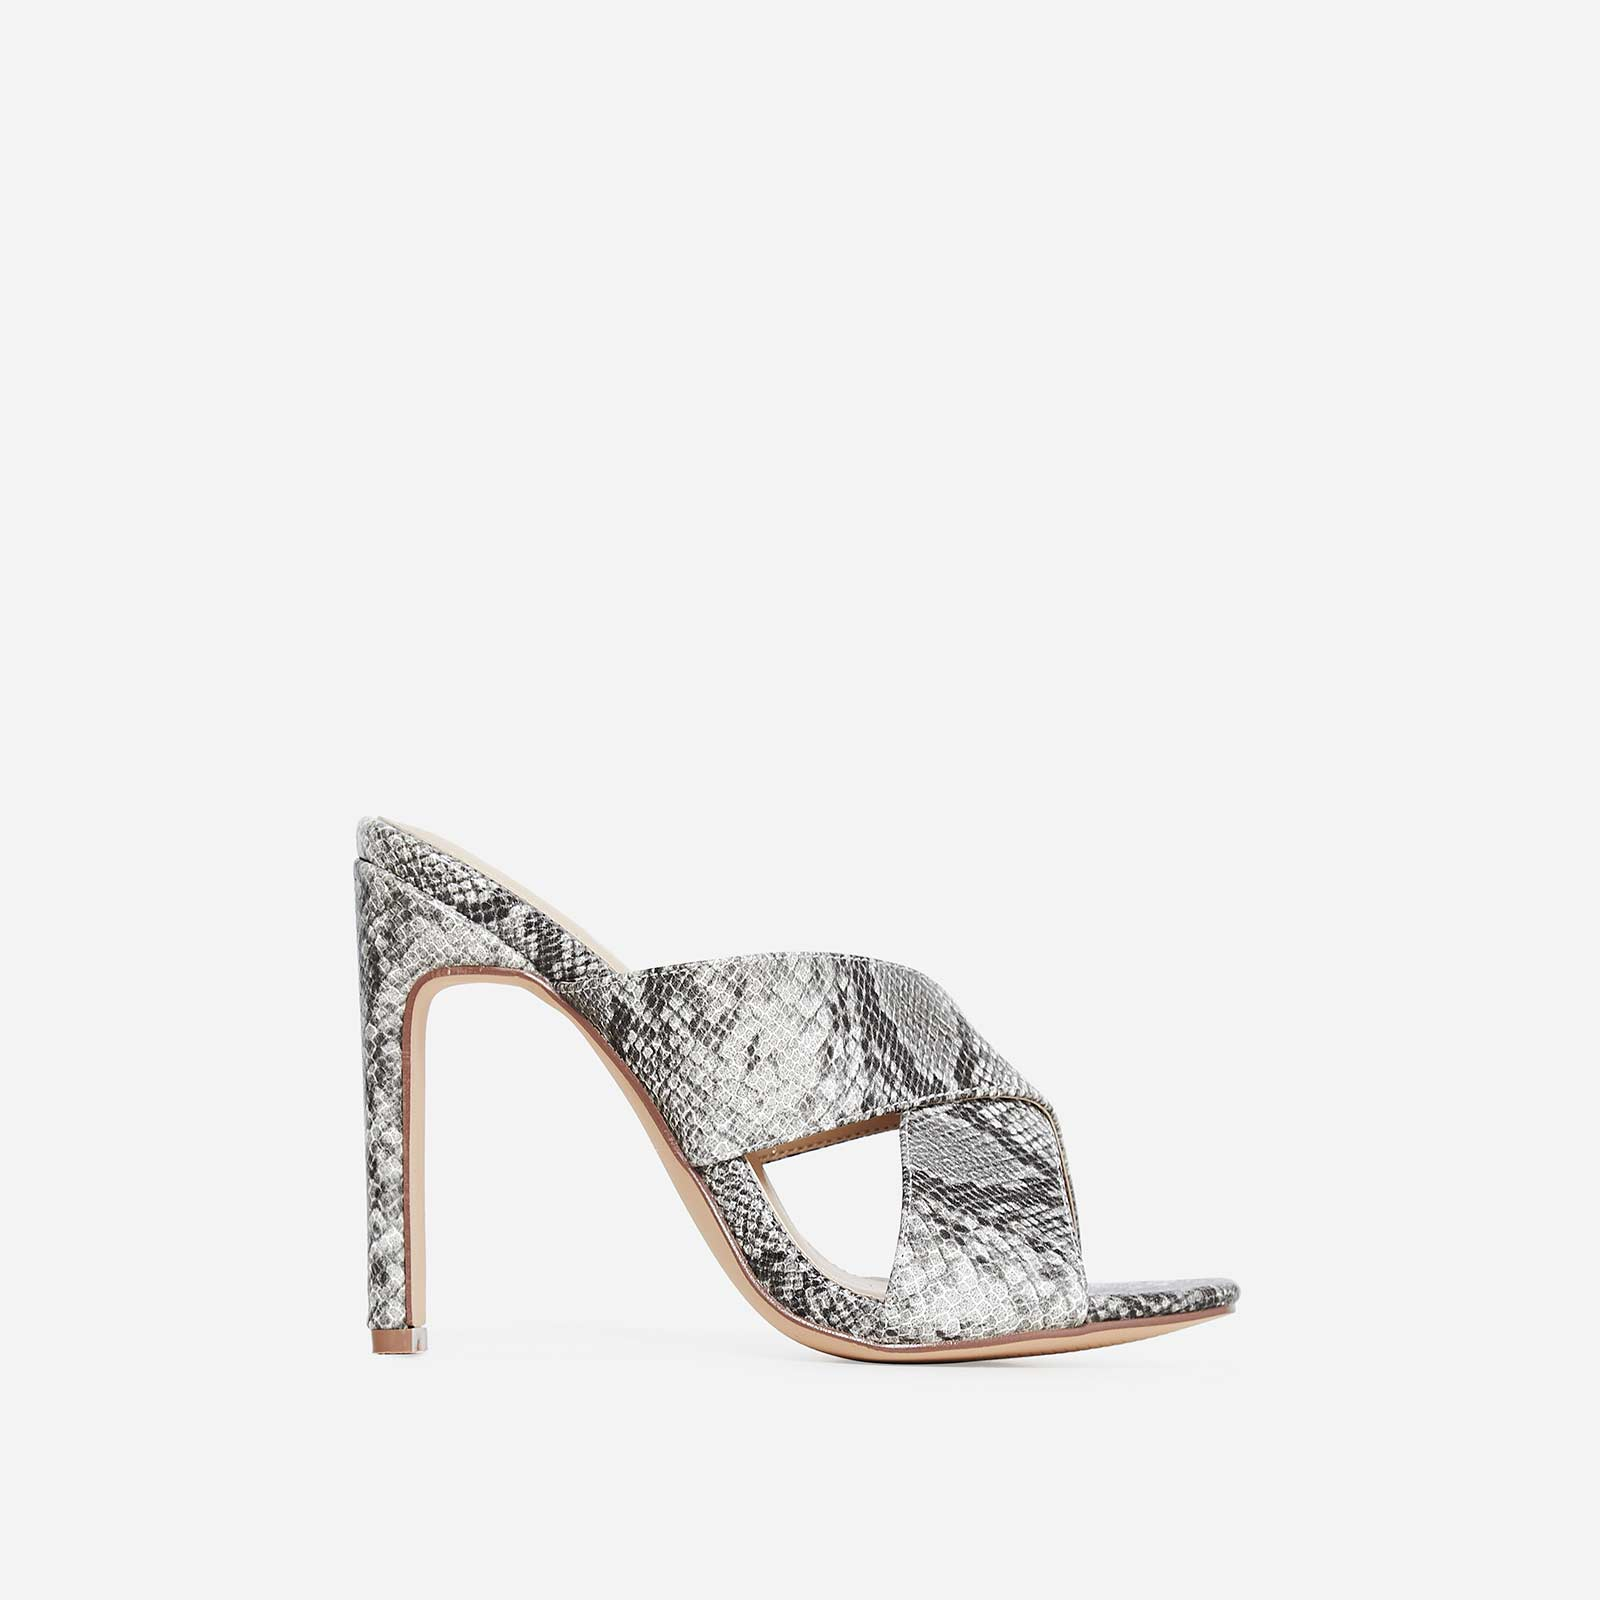 Hypnotic Cross Over Mule In Grey Snake Print Faux Leather